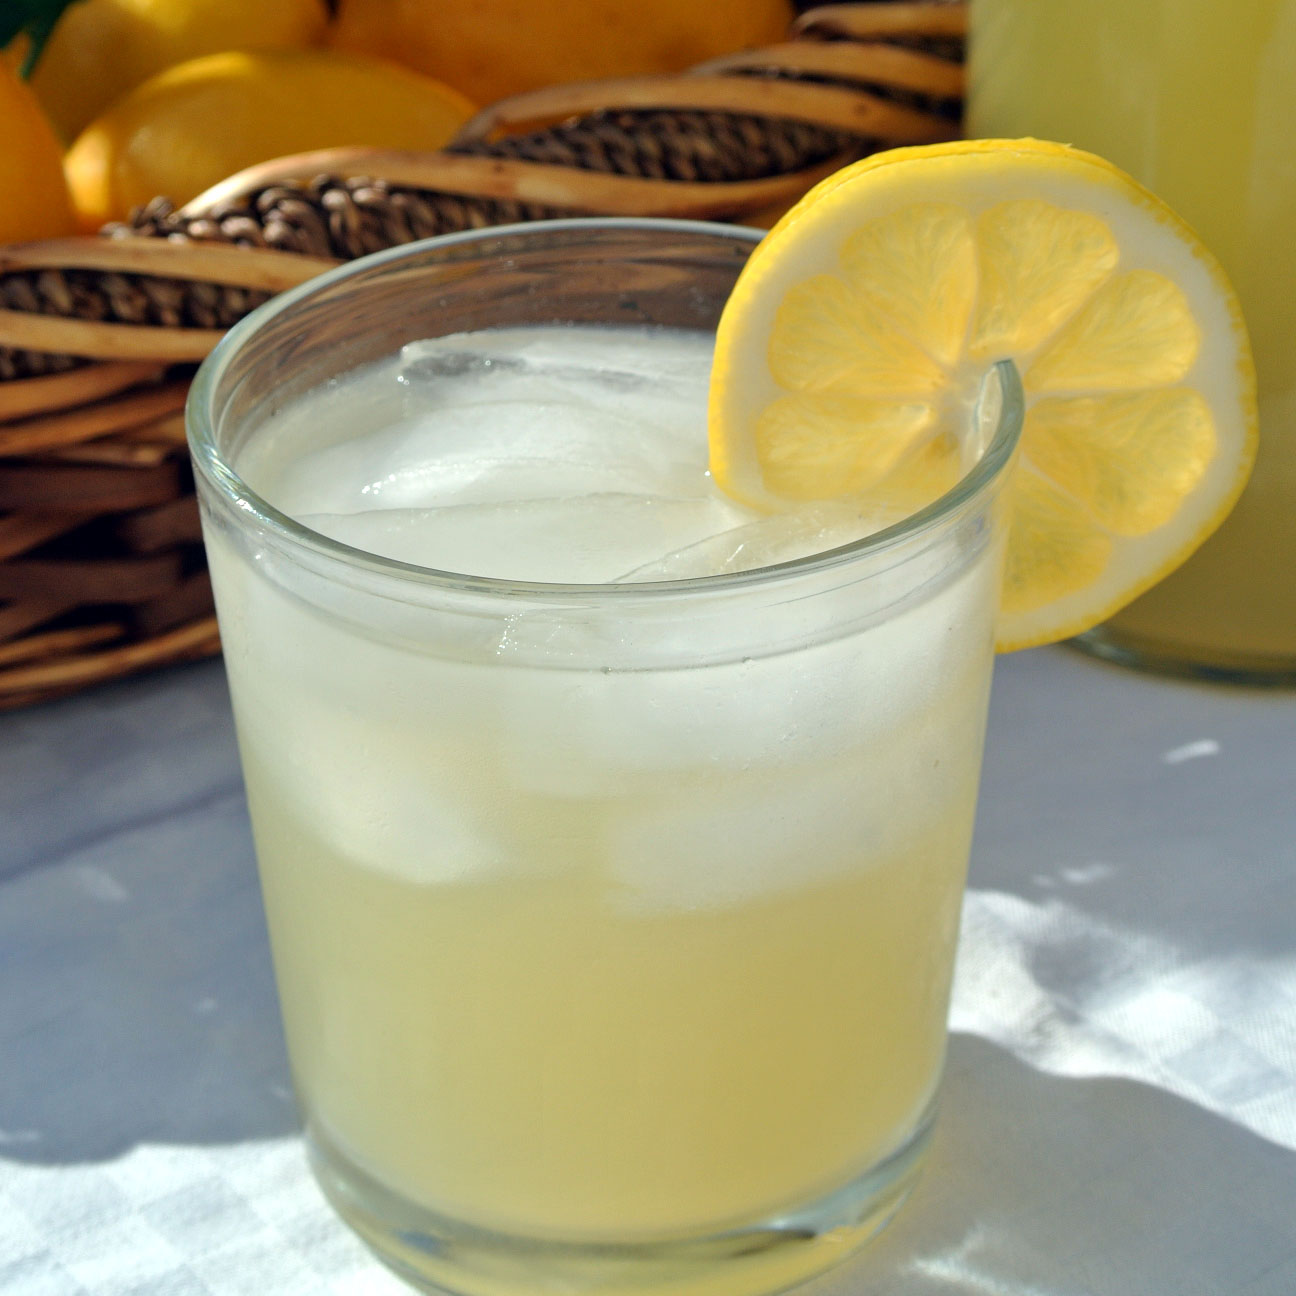 Gourmet Cooking For Two: Limoncello Cocktail